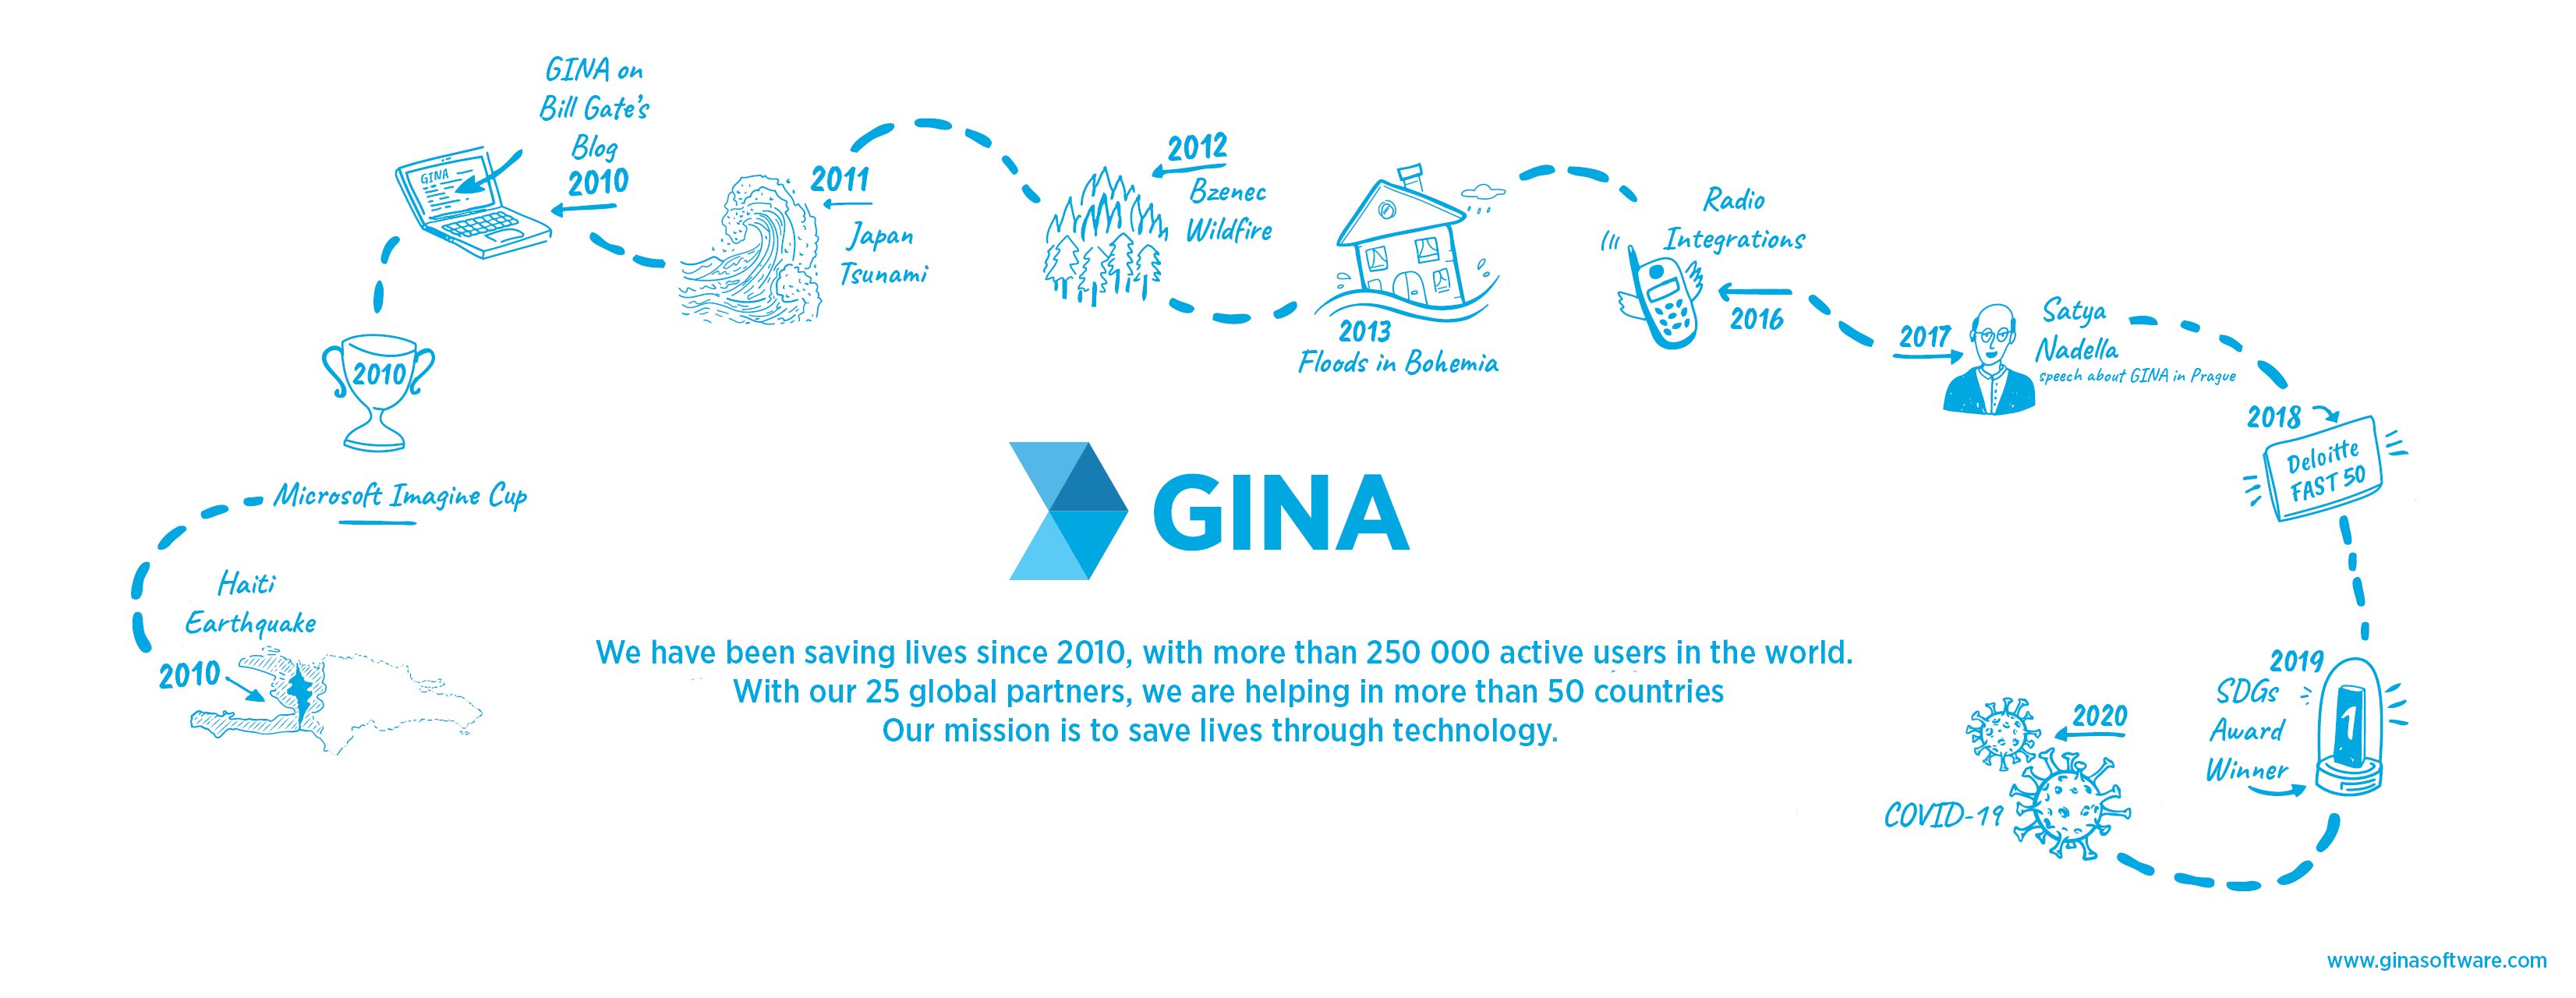 GINA Software 10th anniversary infographic